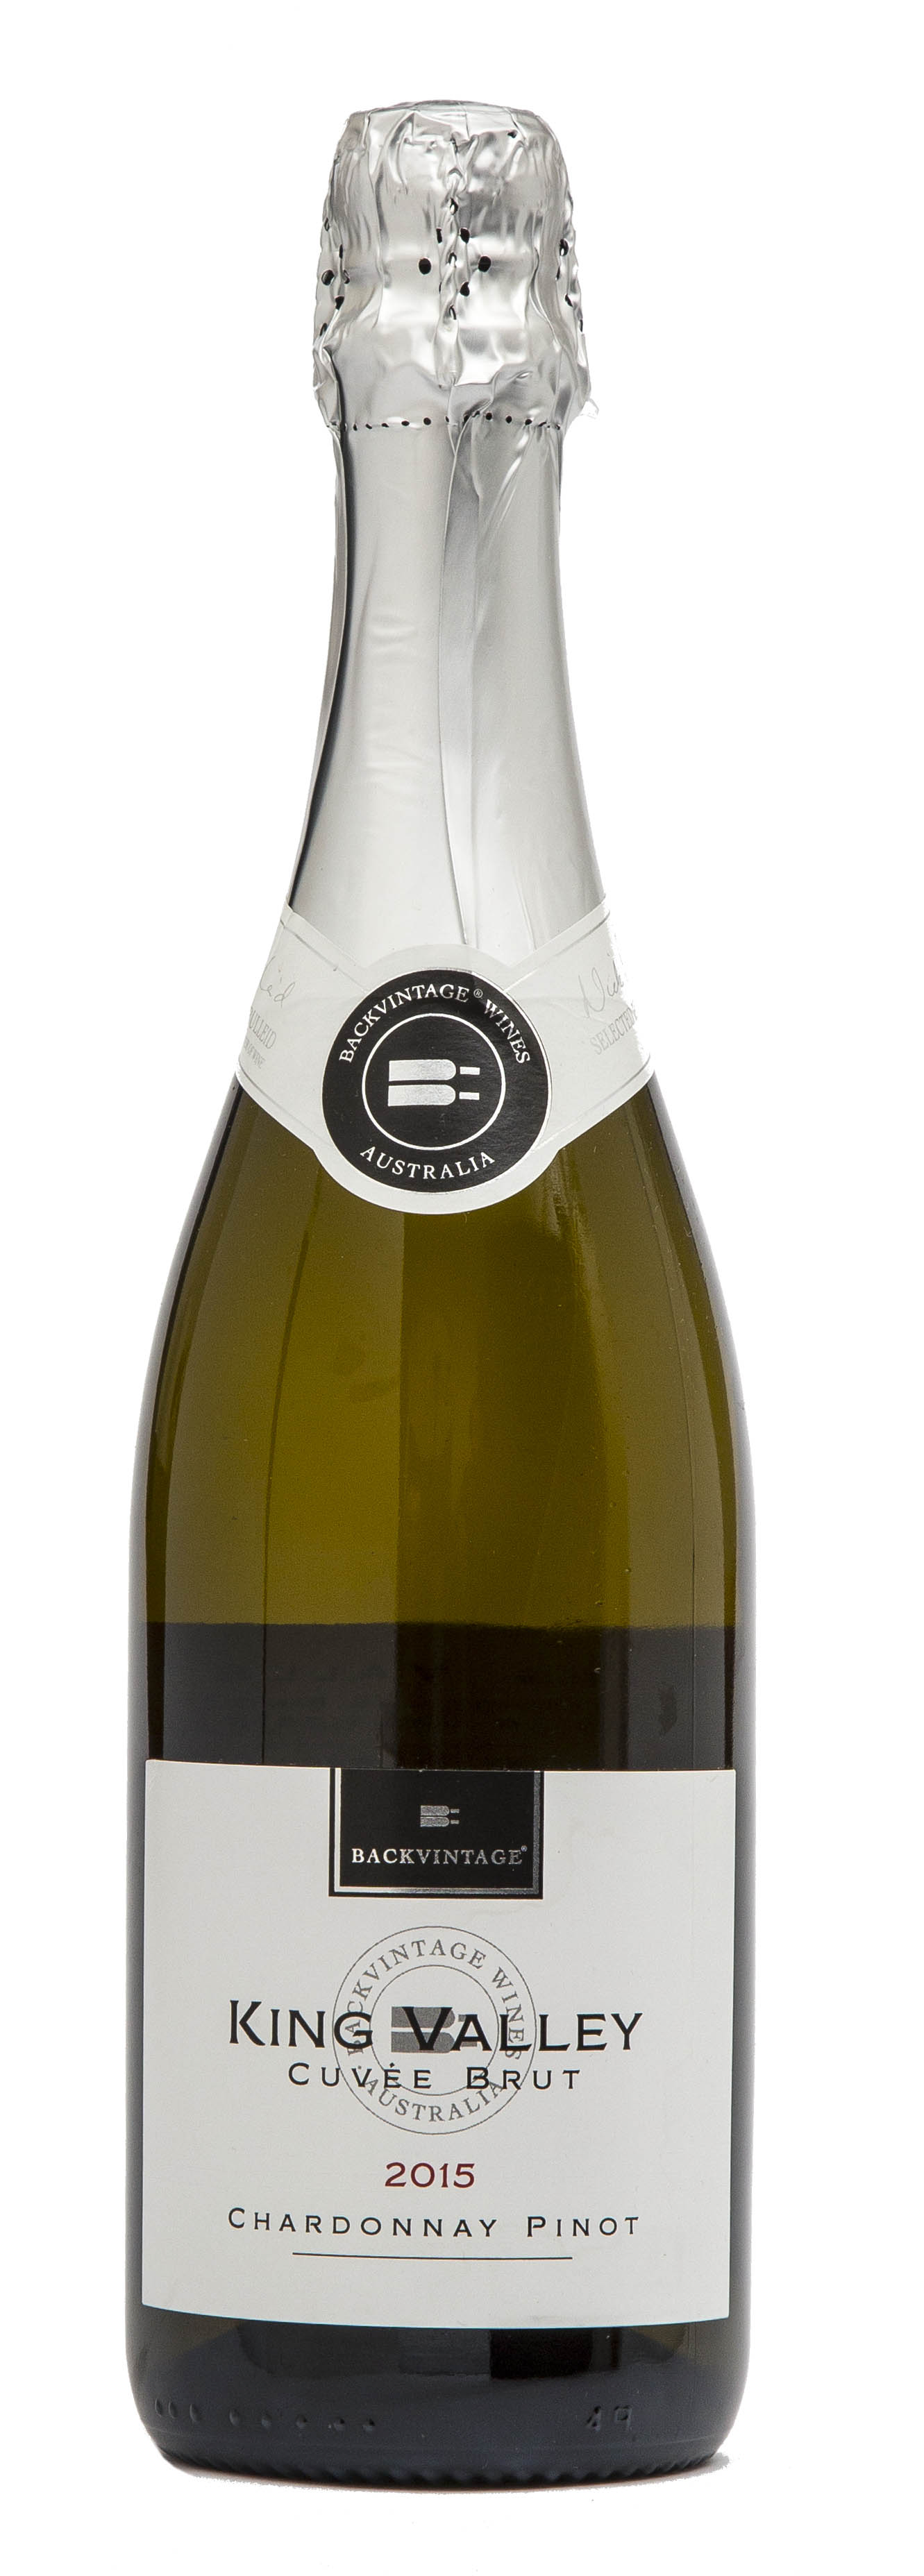 2015 BackVintage King Valley Sparkling Cuvee Brut